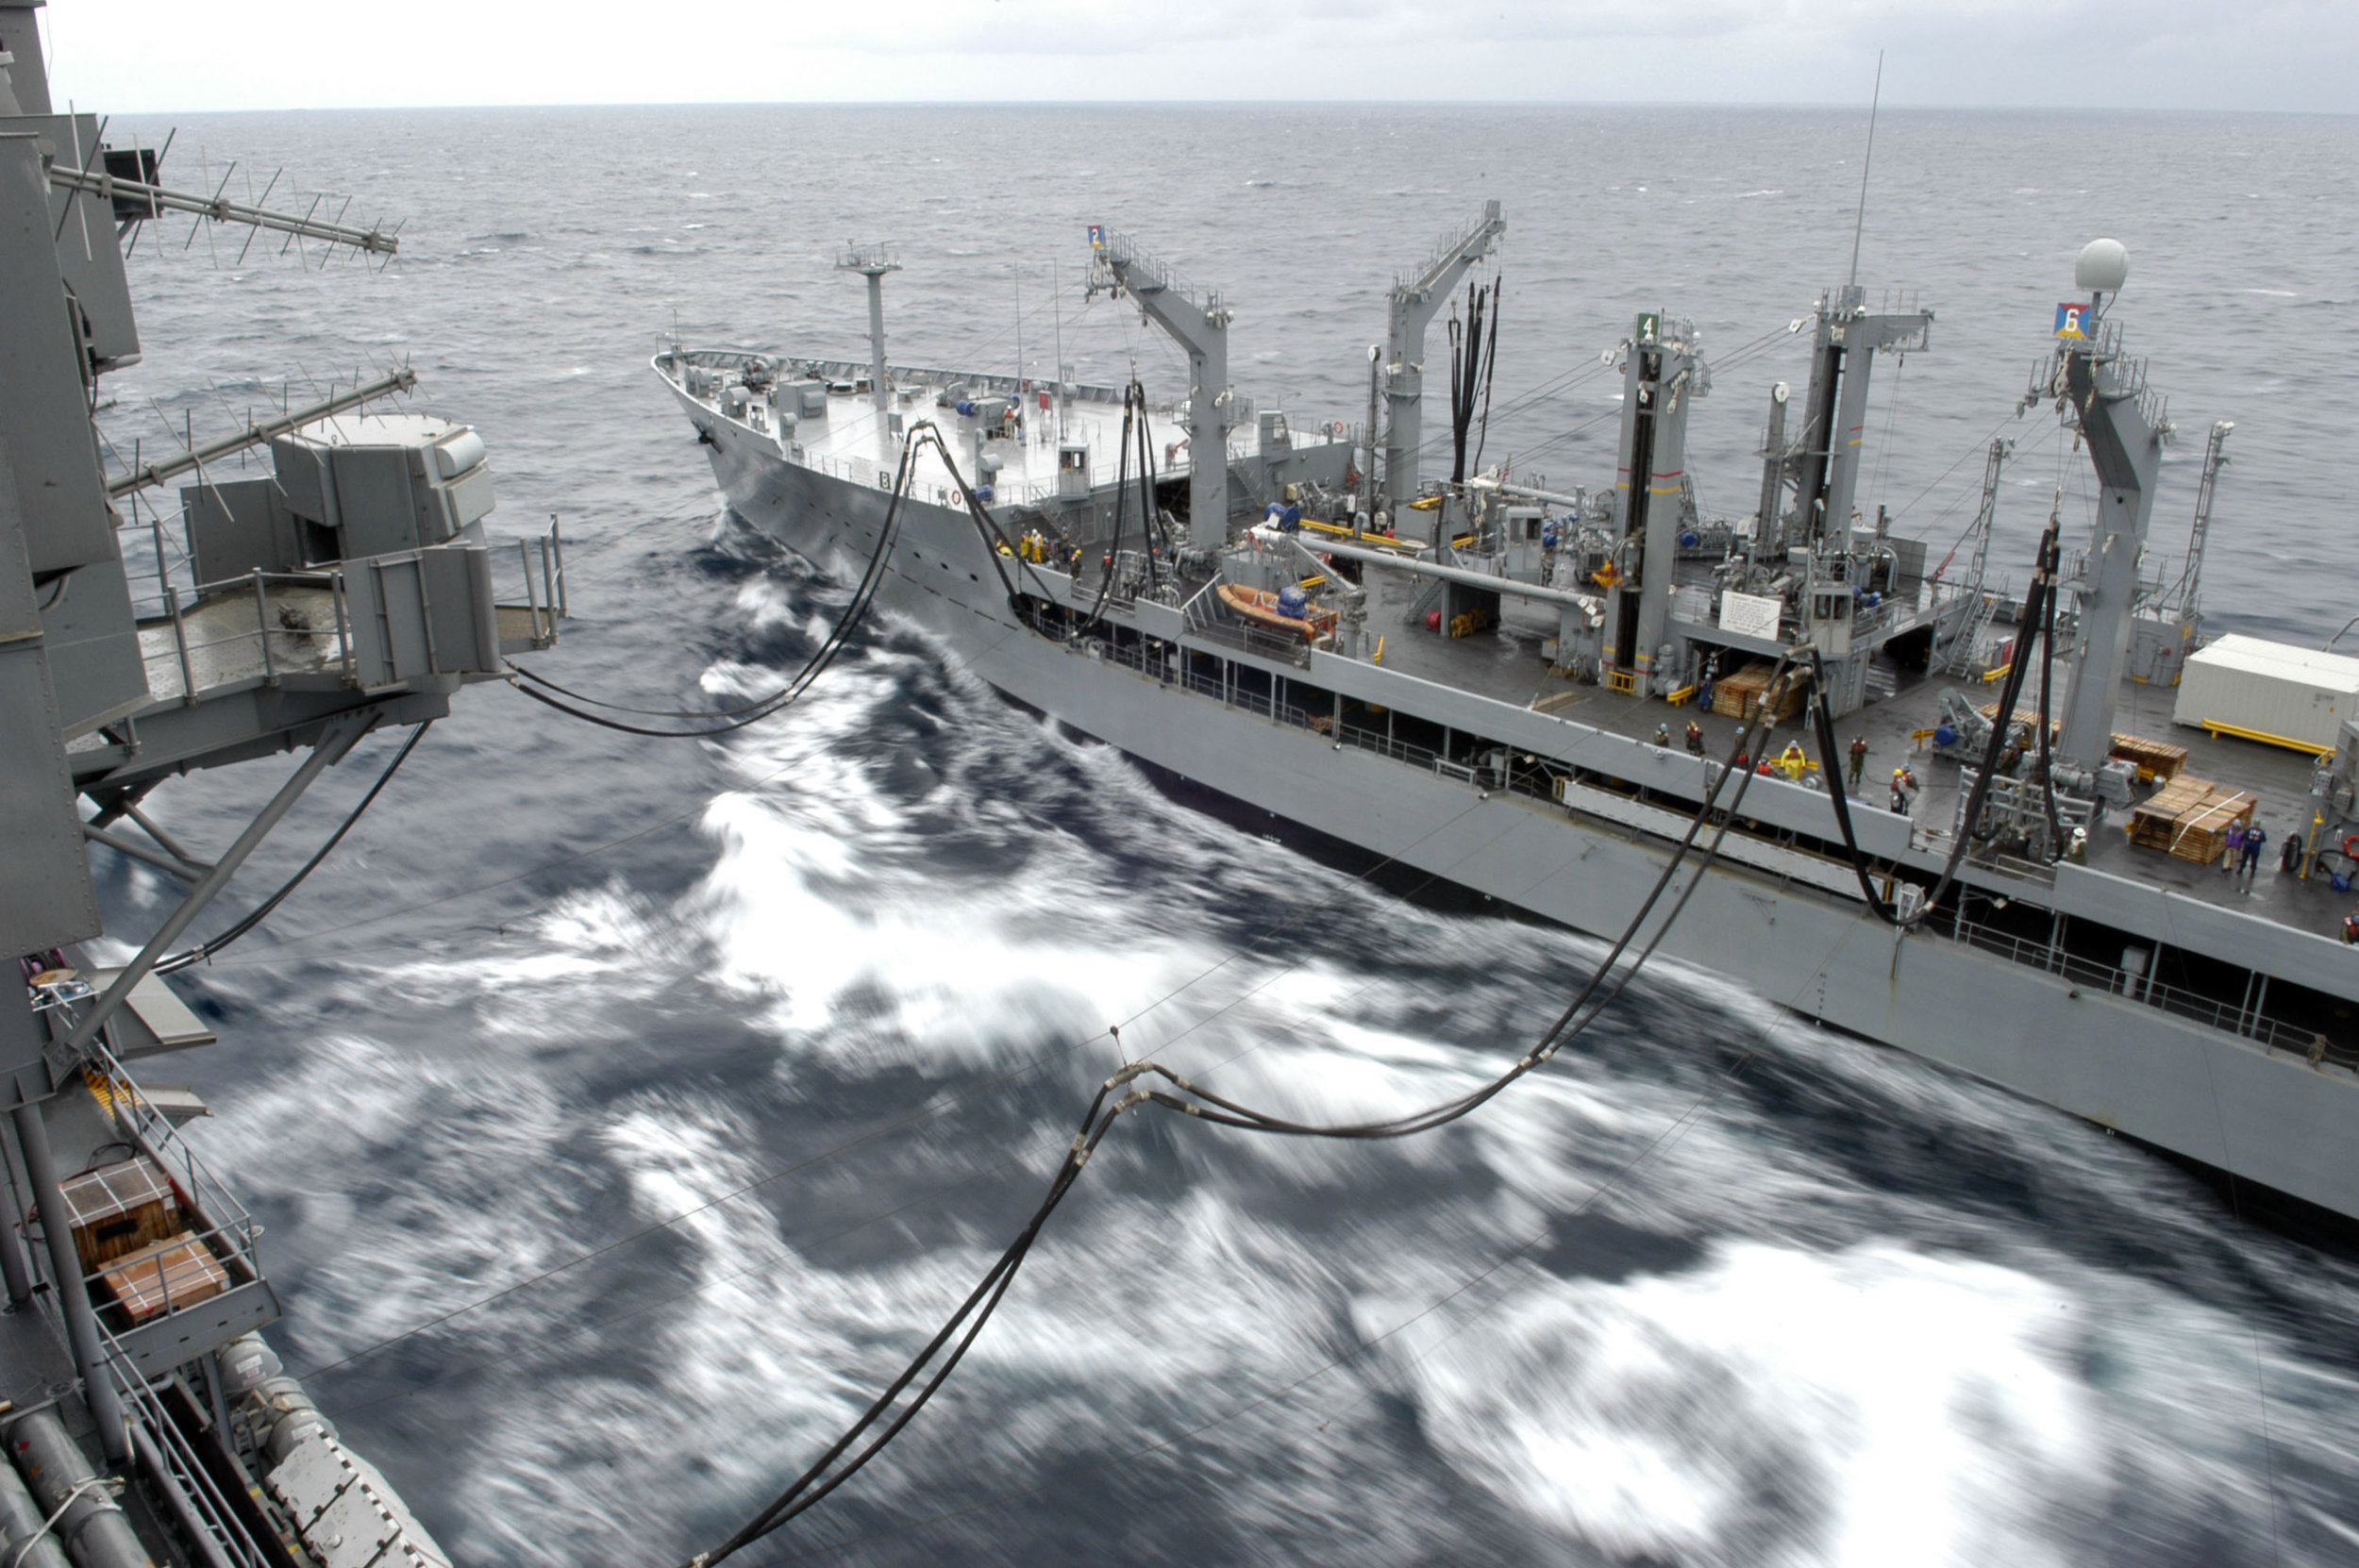 The Underway Replenishment Oilier USNS Yukon (T-AO 202) conducts a replenishment at sea (RAS) with USS Kitty Hawk (CV 63) in 2006. (Photographer's Mate Airman Jimmy C. Pan/U.S. Navy Photo)